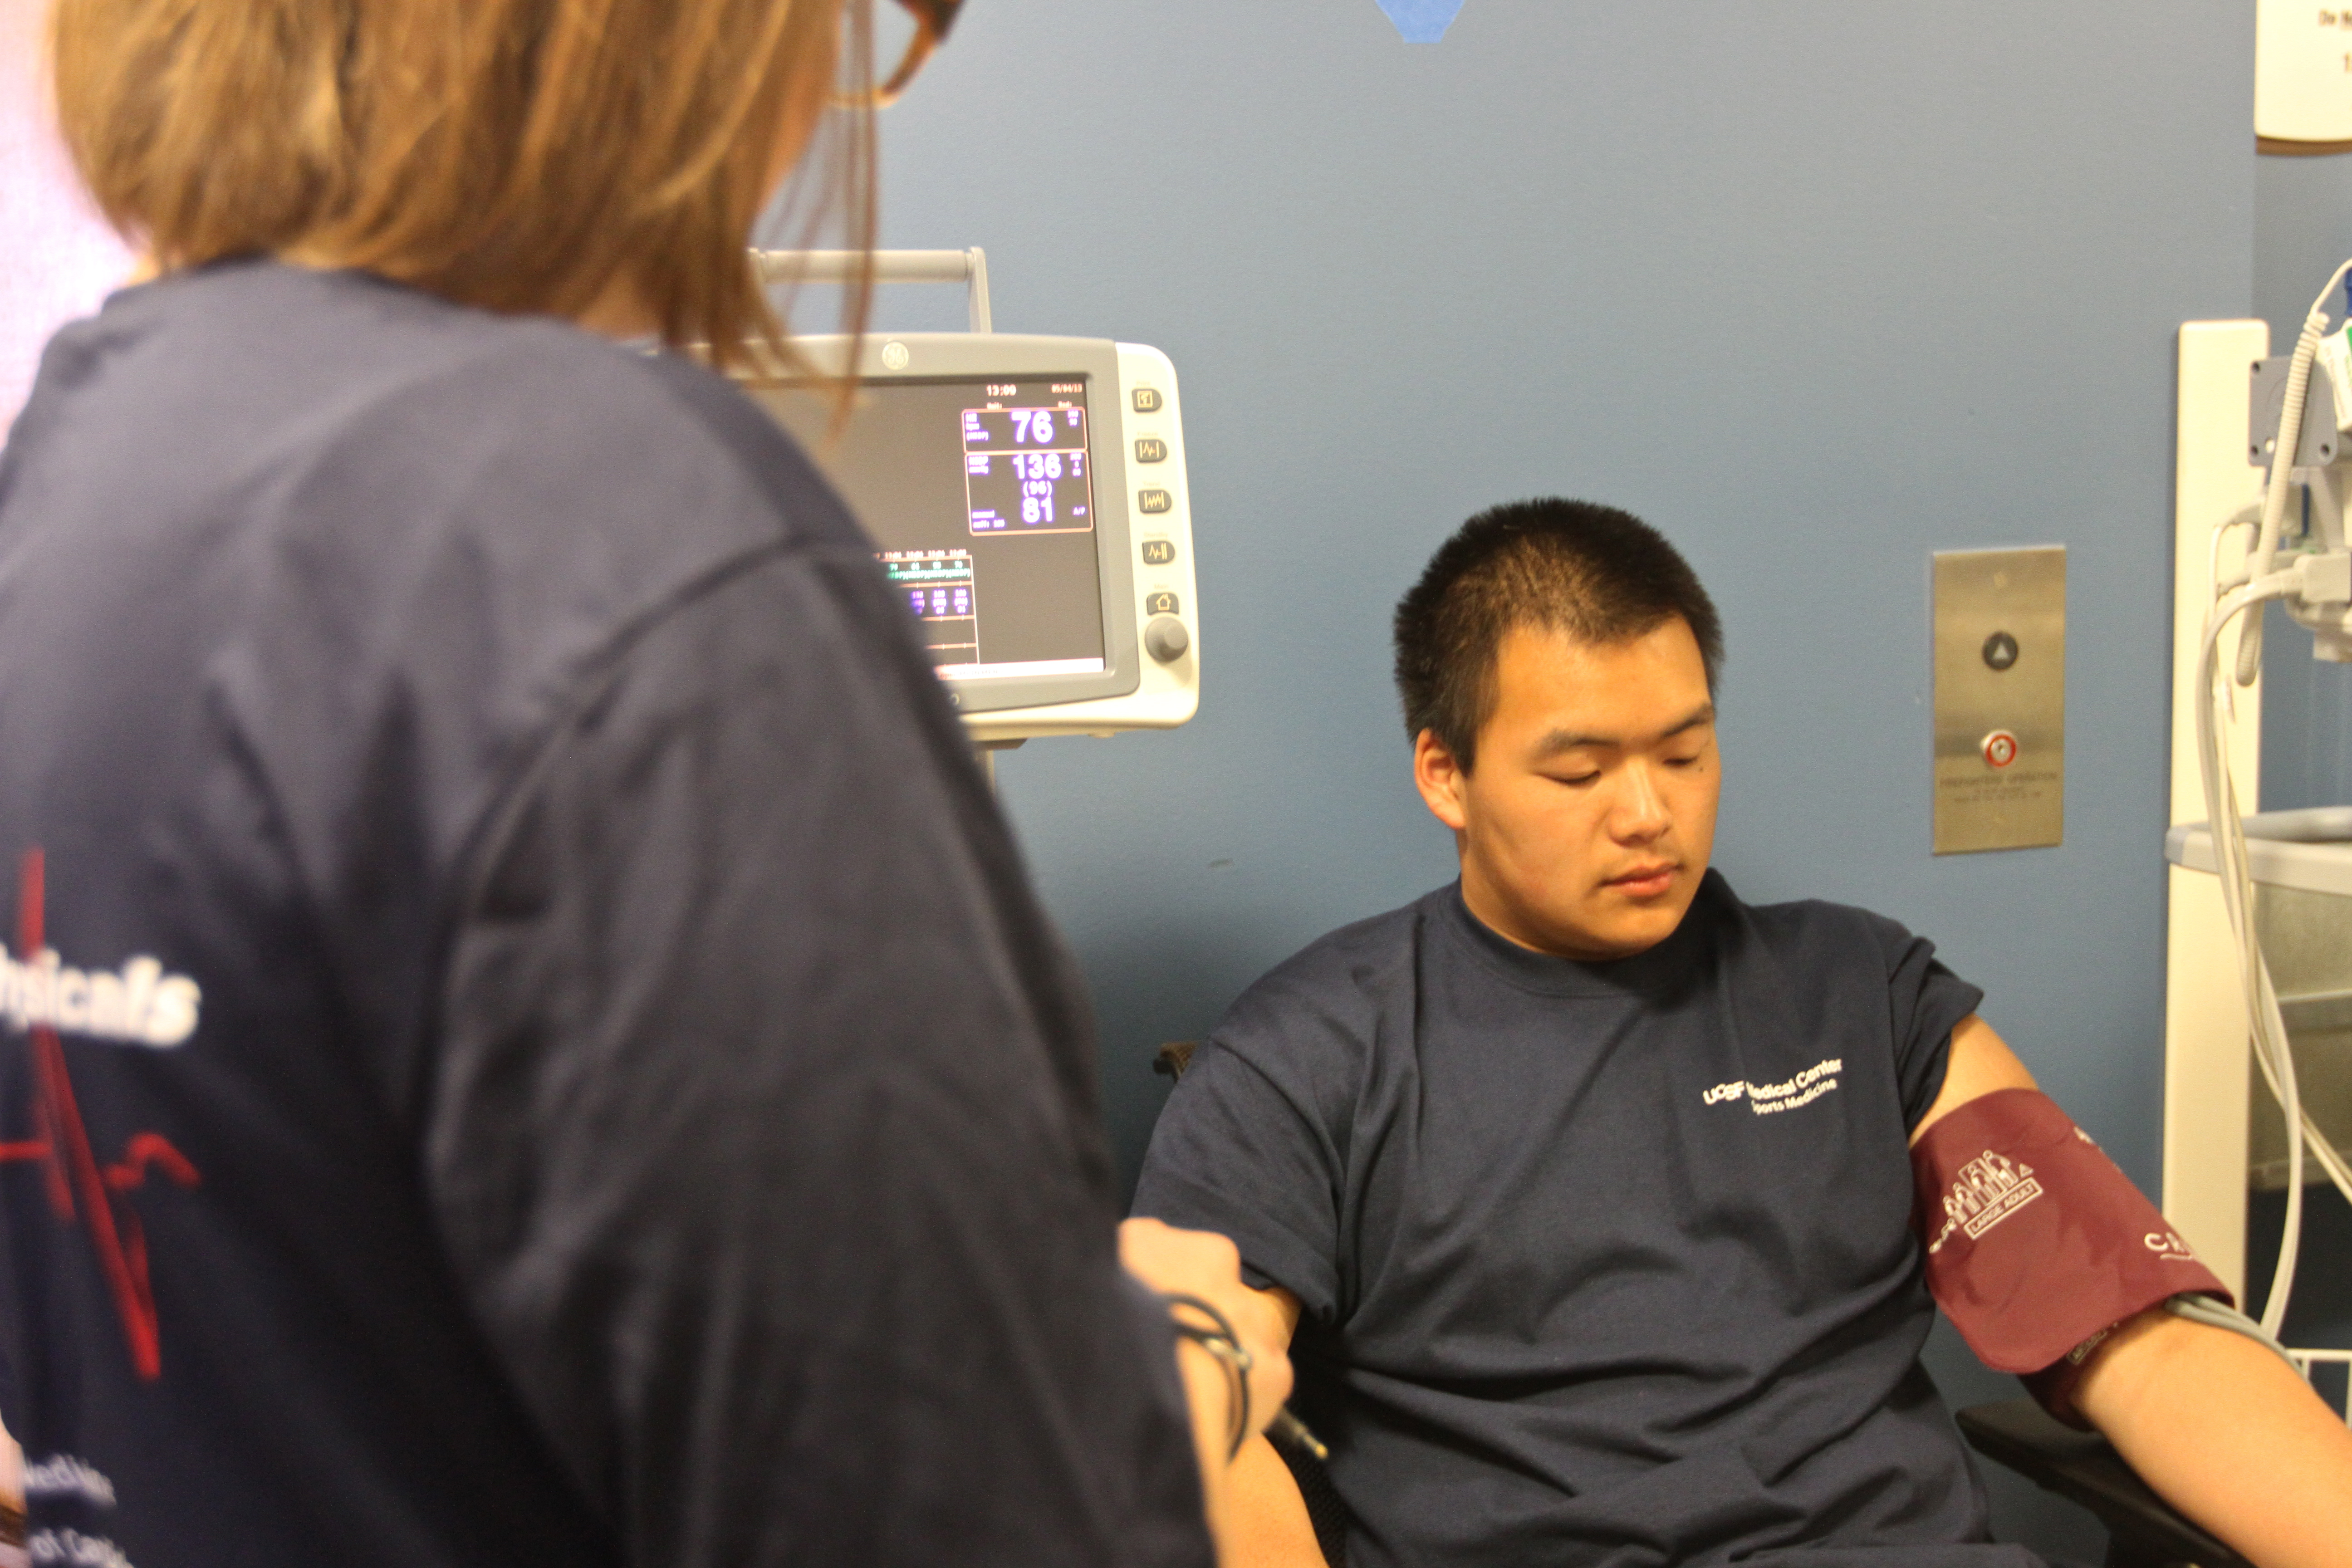 Then, the student athlete gets his/her blood pressure checked.